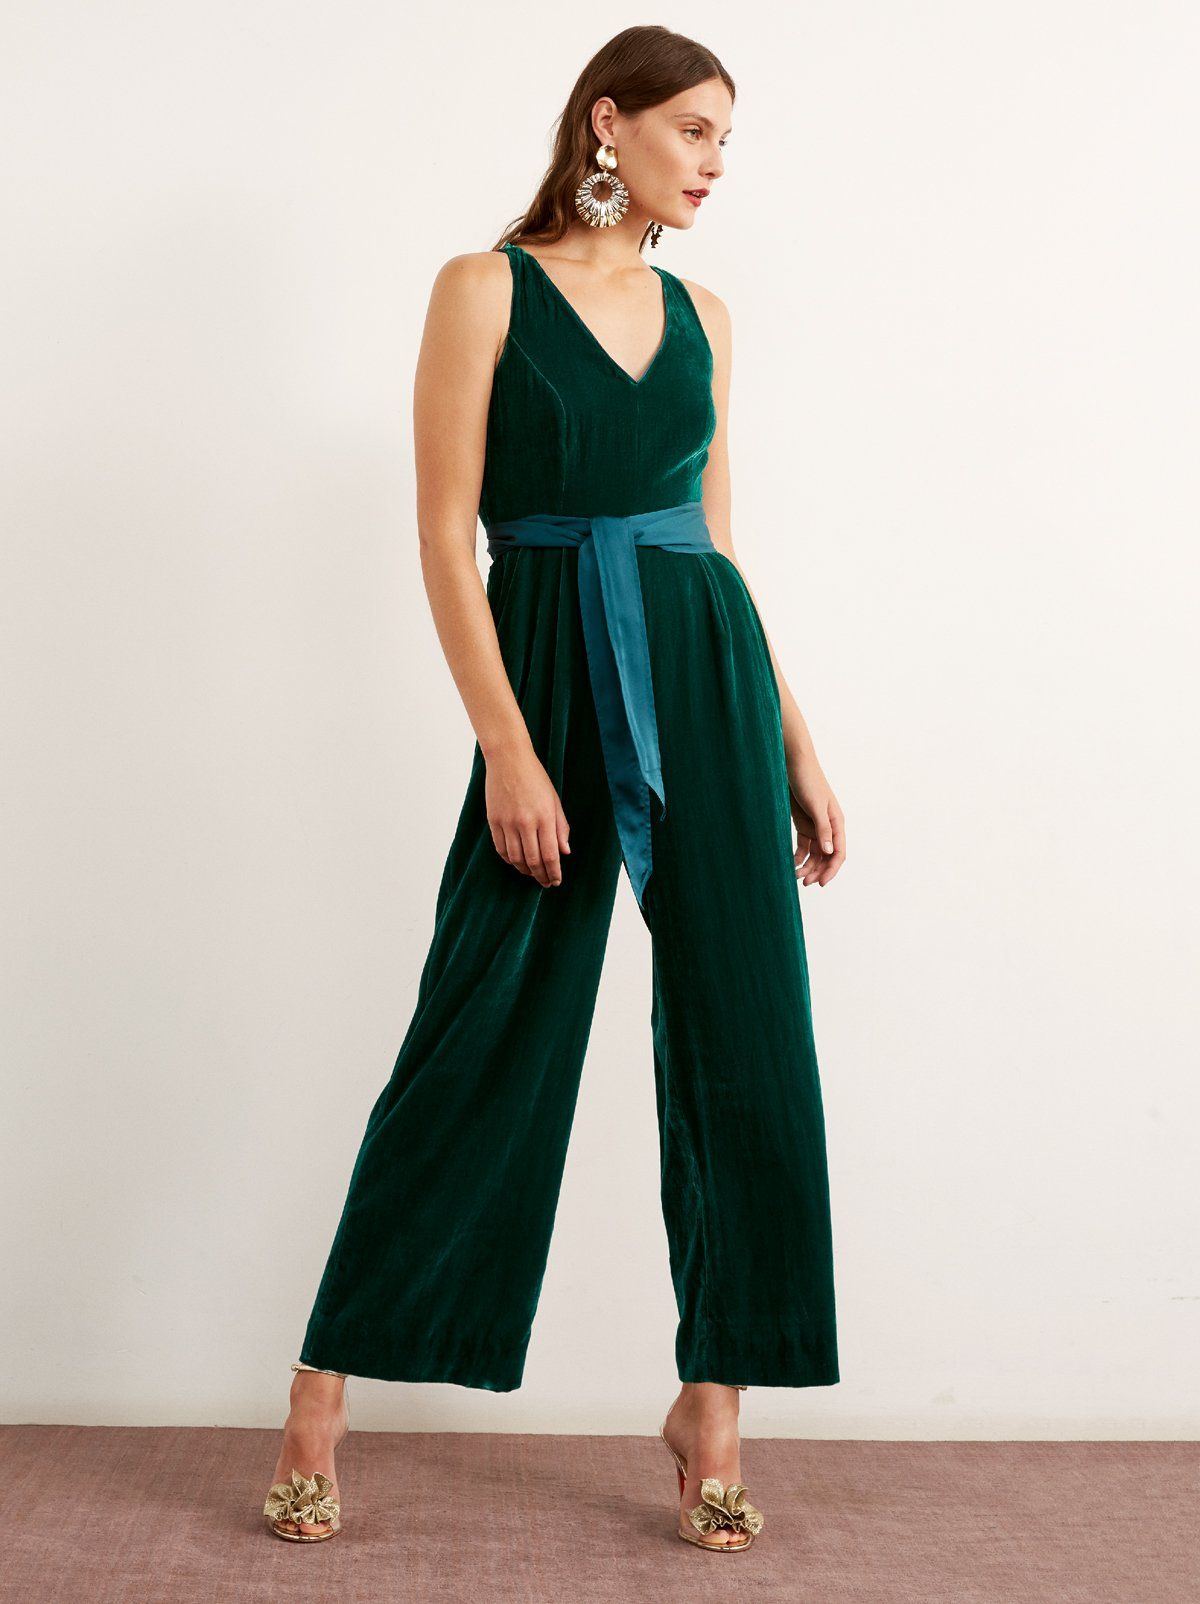 aa3dfb2372b Prunella Green Velvet Wide Leg Jumpsuit by KITRI Studio